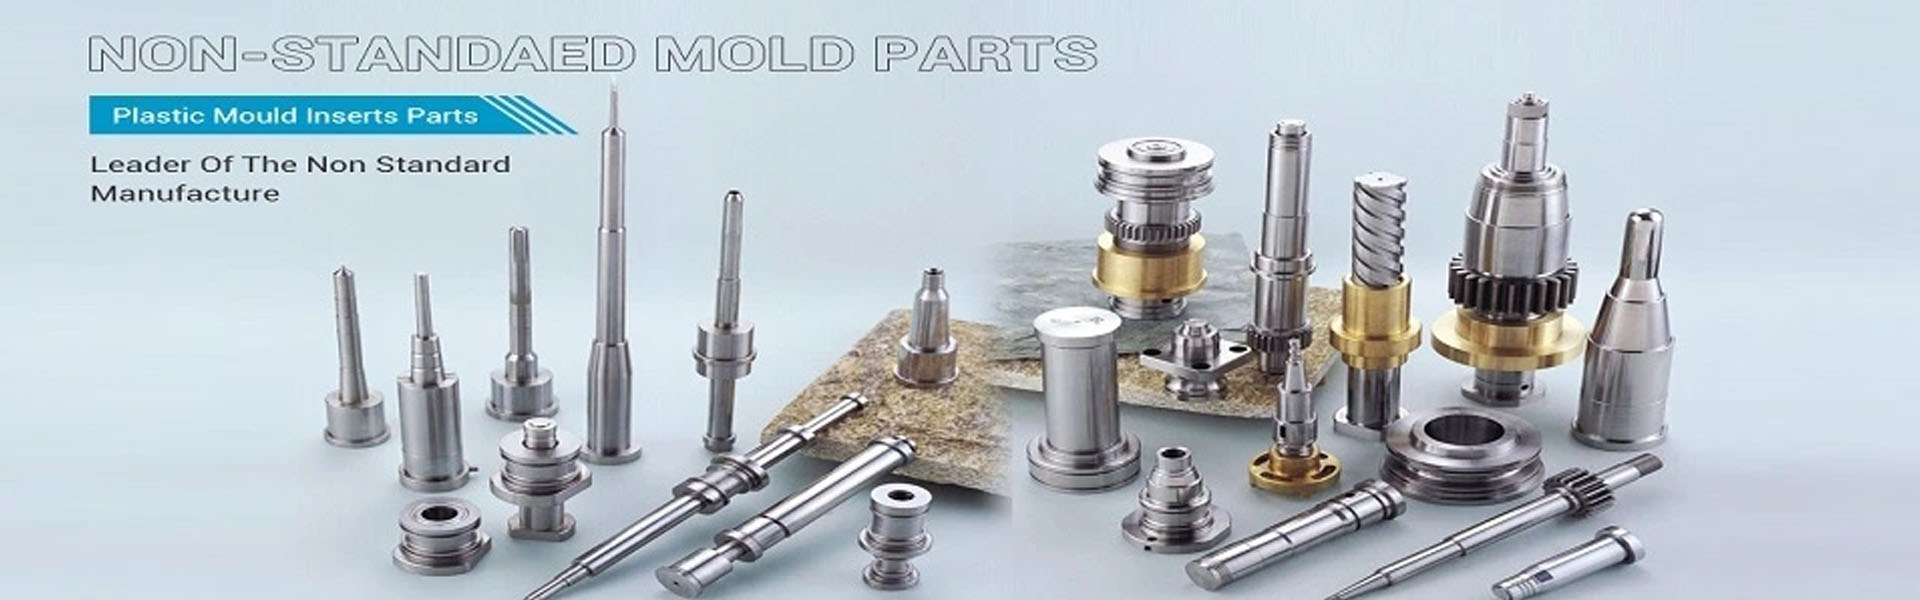 DongGuan BG Precision Mould Parts Co.,Ltd